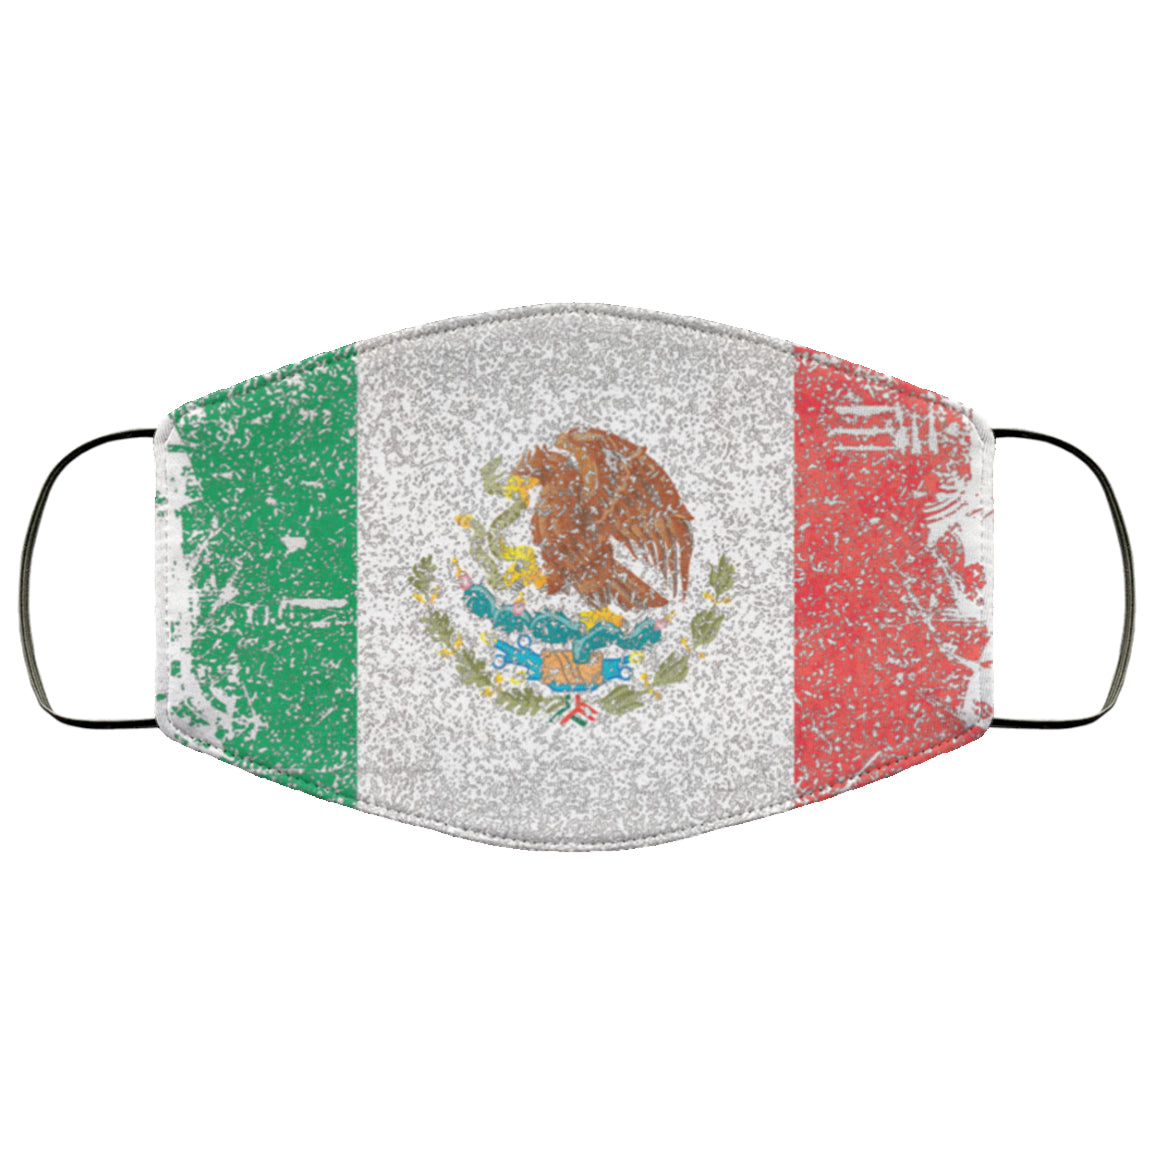 Mexico Mexican Flag Distressed Effect Face Mask